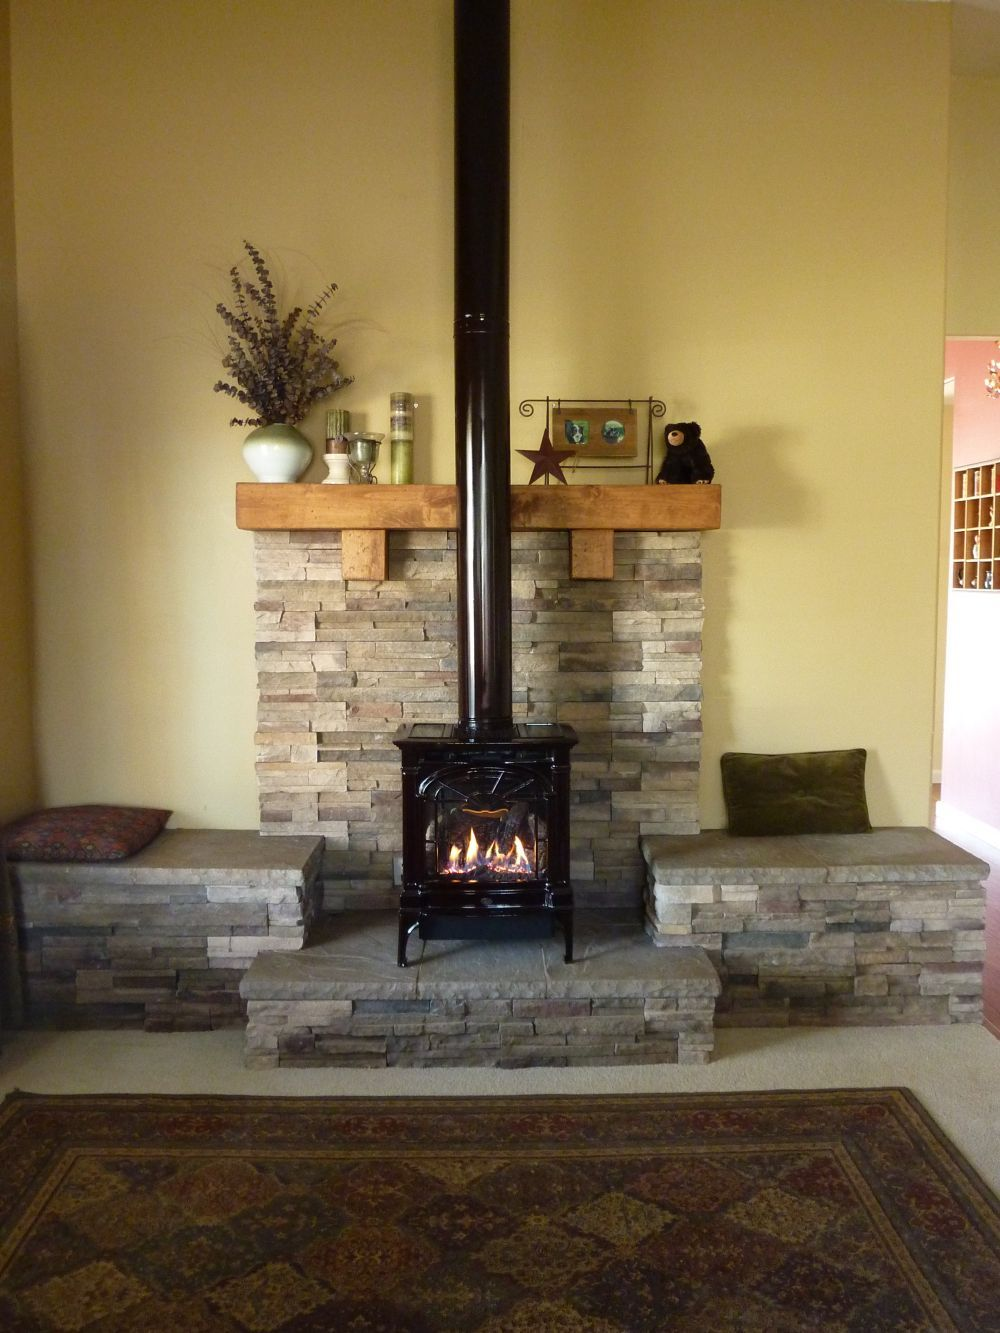 Pin By Katrina Starkweather On Abode Wood Stove Hearth Wood Stove Wood Burning Fireplace